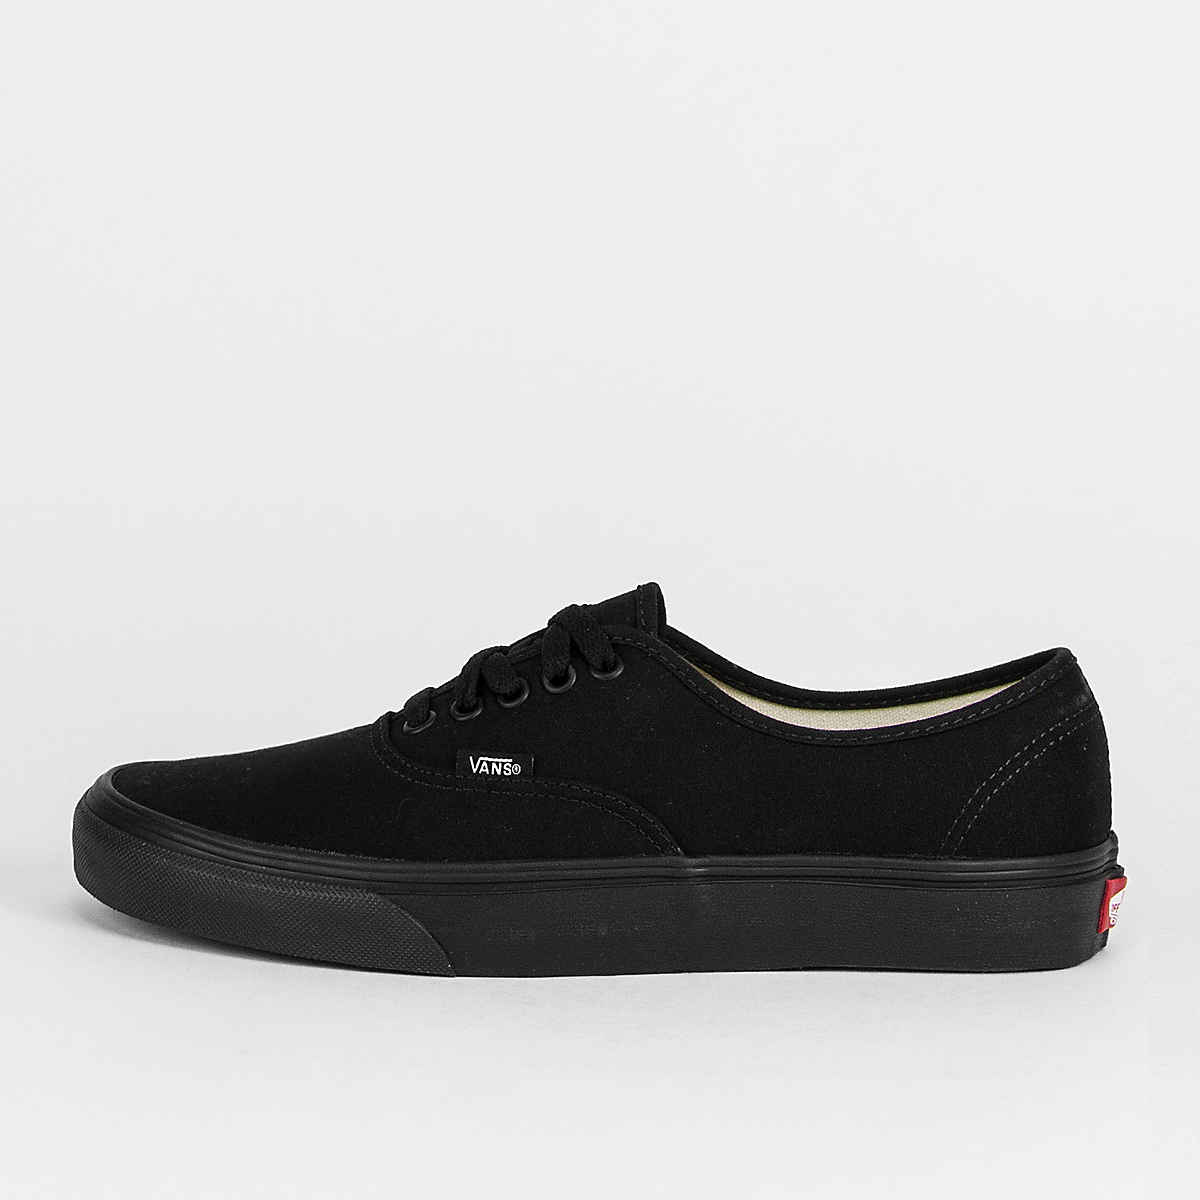 Vans Authentic kindersneaker zwart